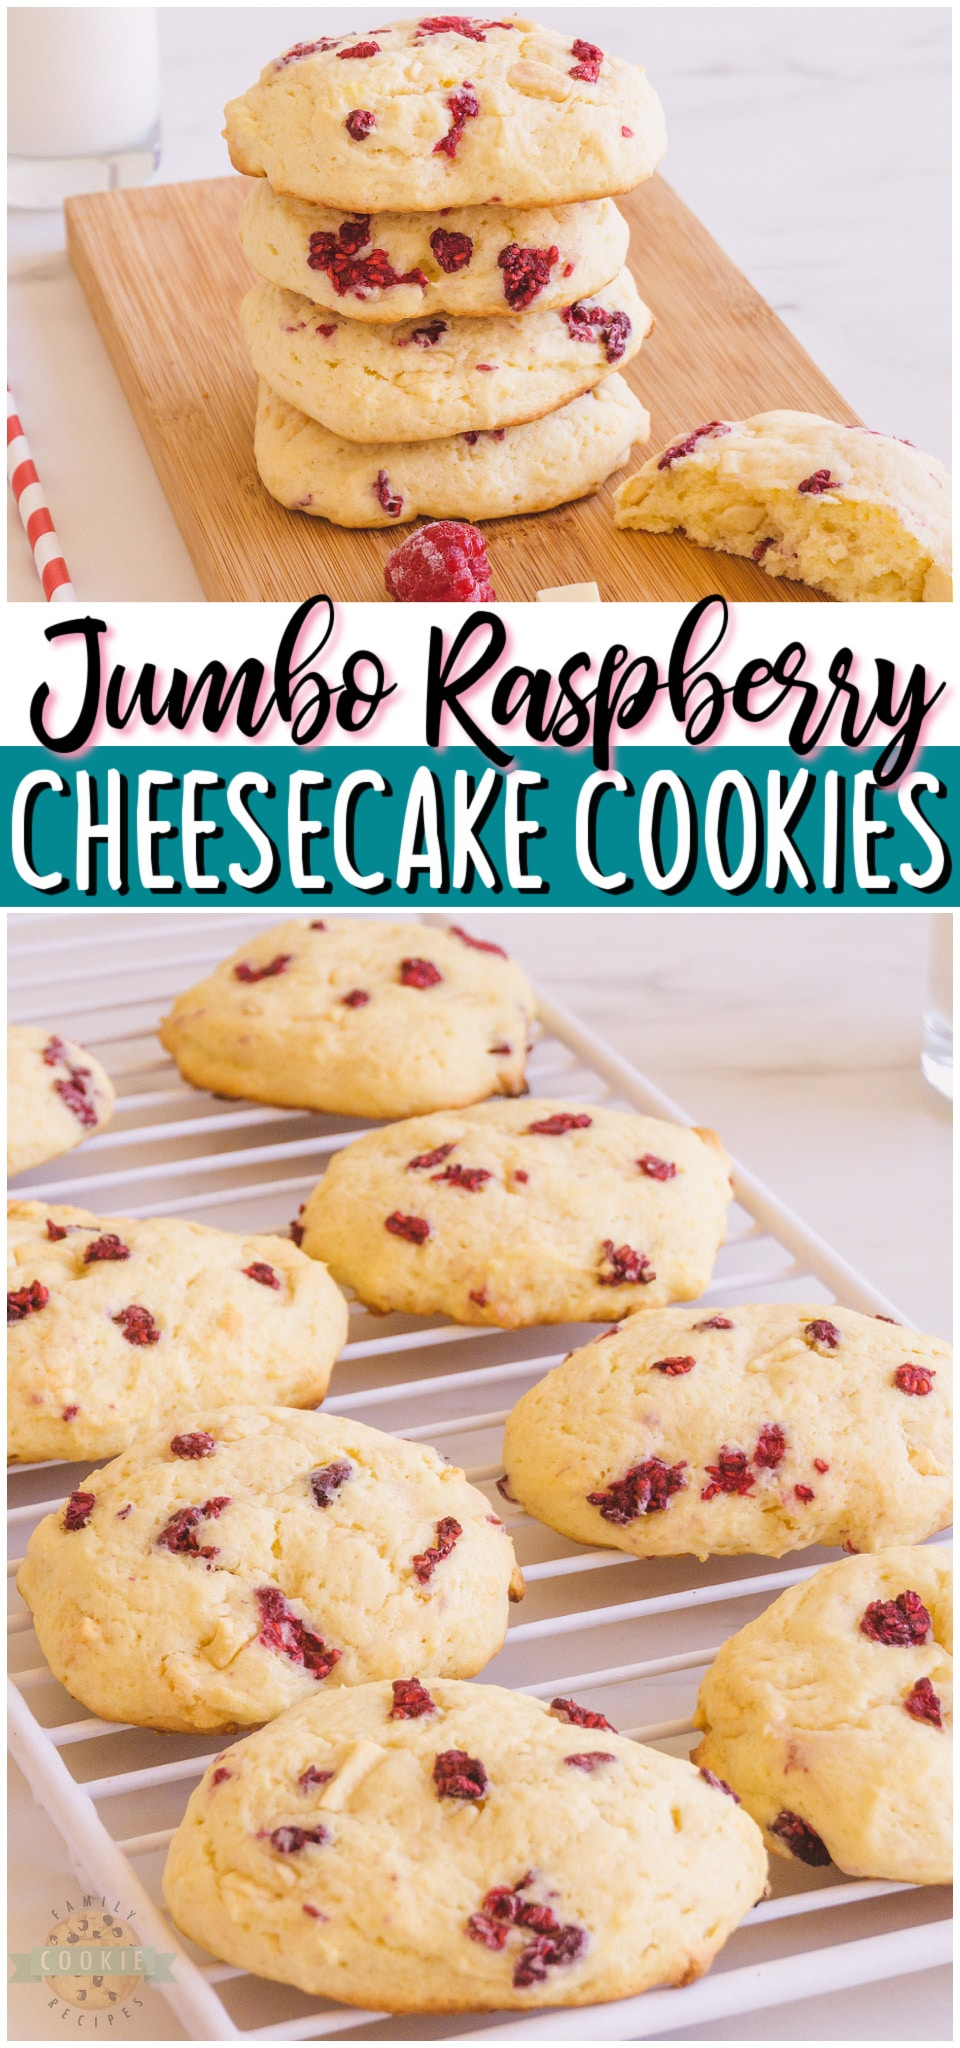 Giant raspberry cheesecake cookies are rich & indulgent cookies made with cream cheese, white chocolate & raspberries! Jumbo sized cheesecake cookies with bright raspberry flavor that everyone loves!